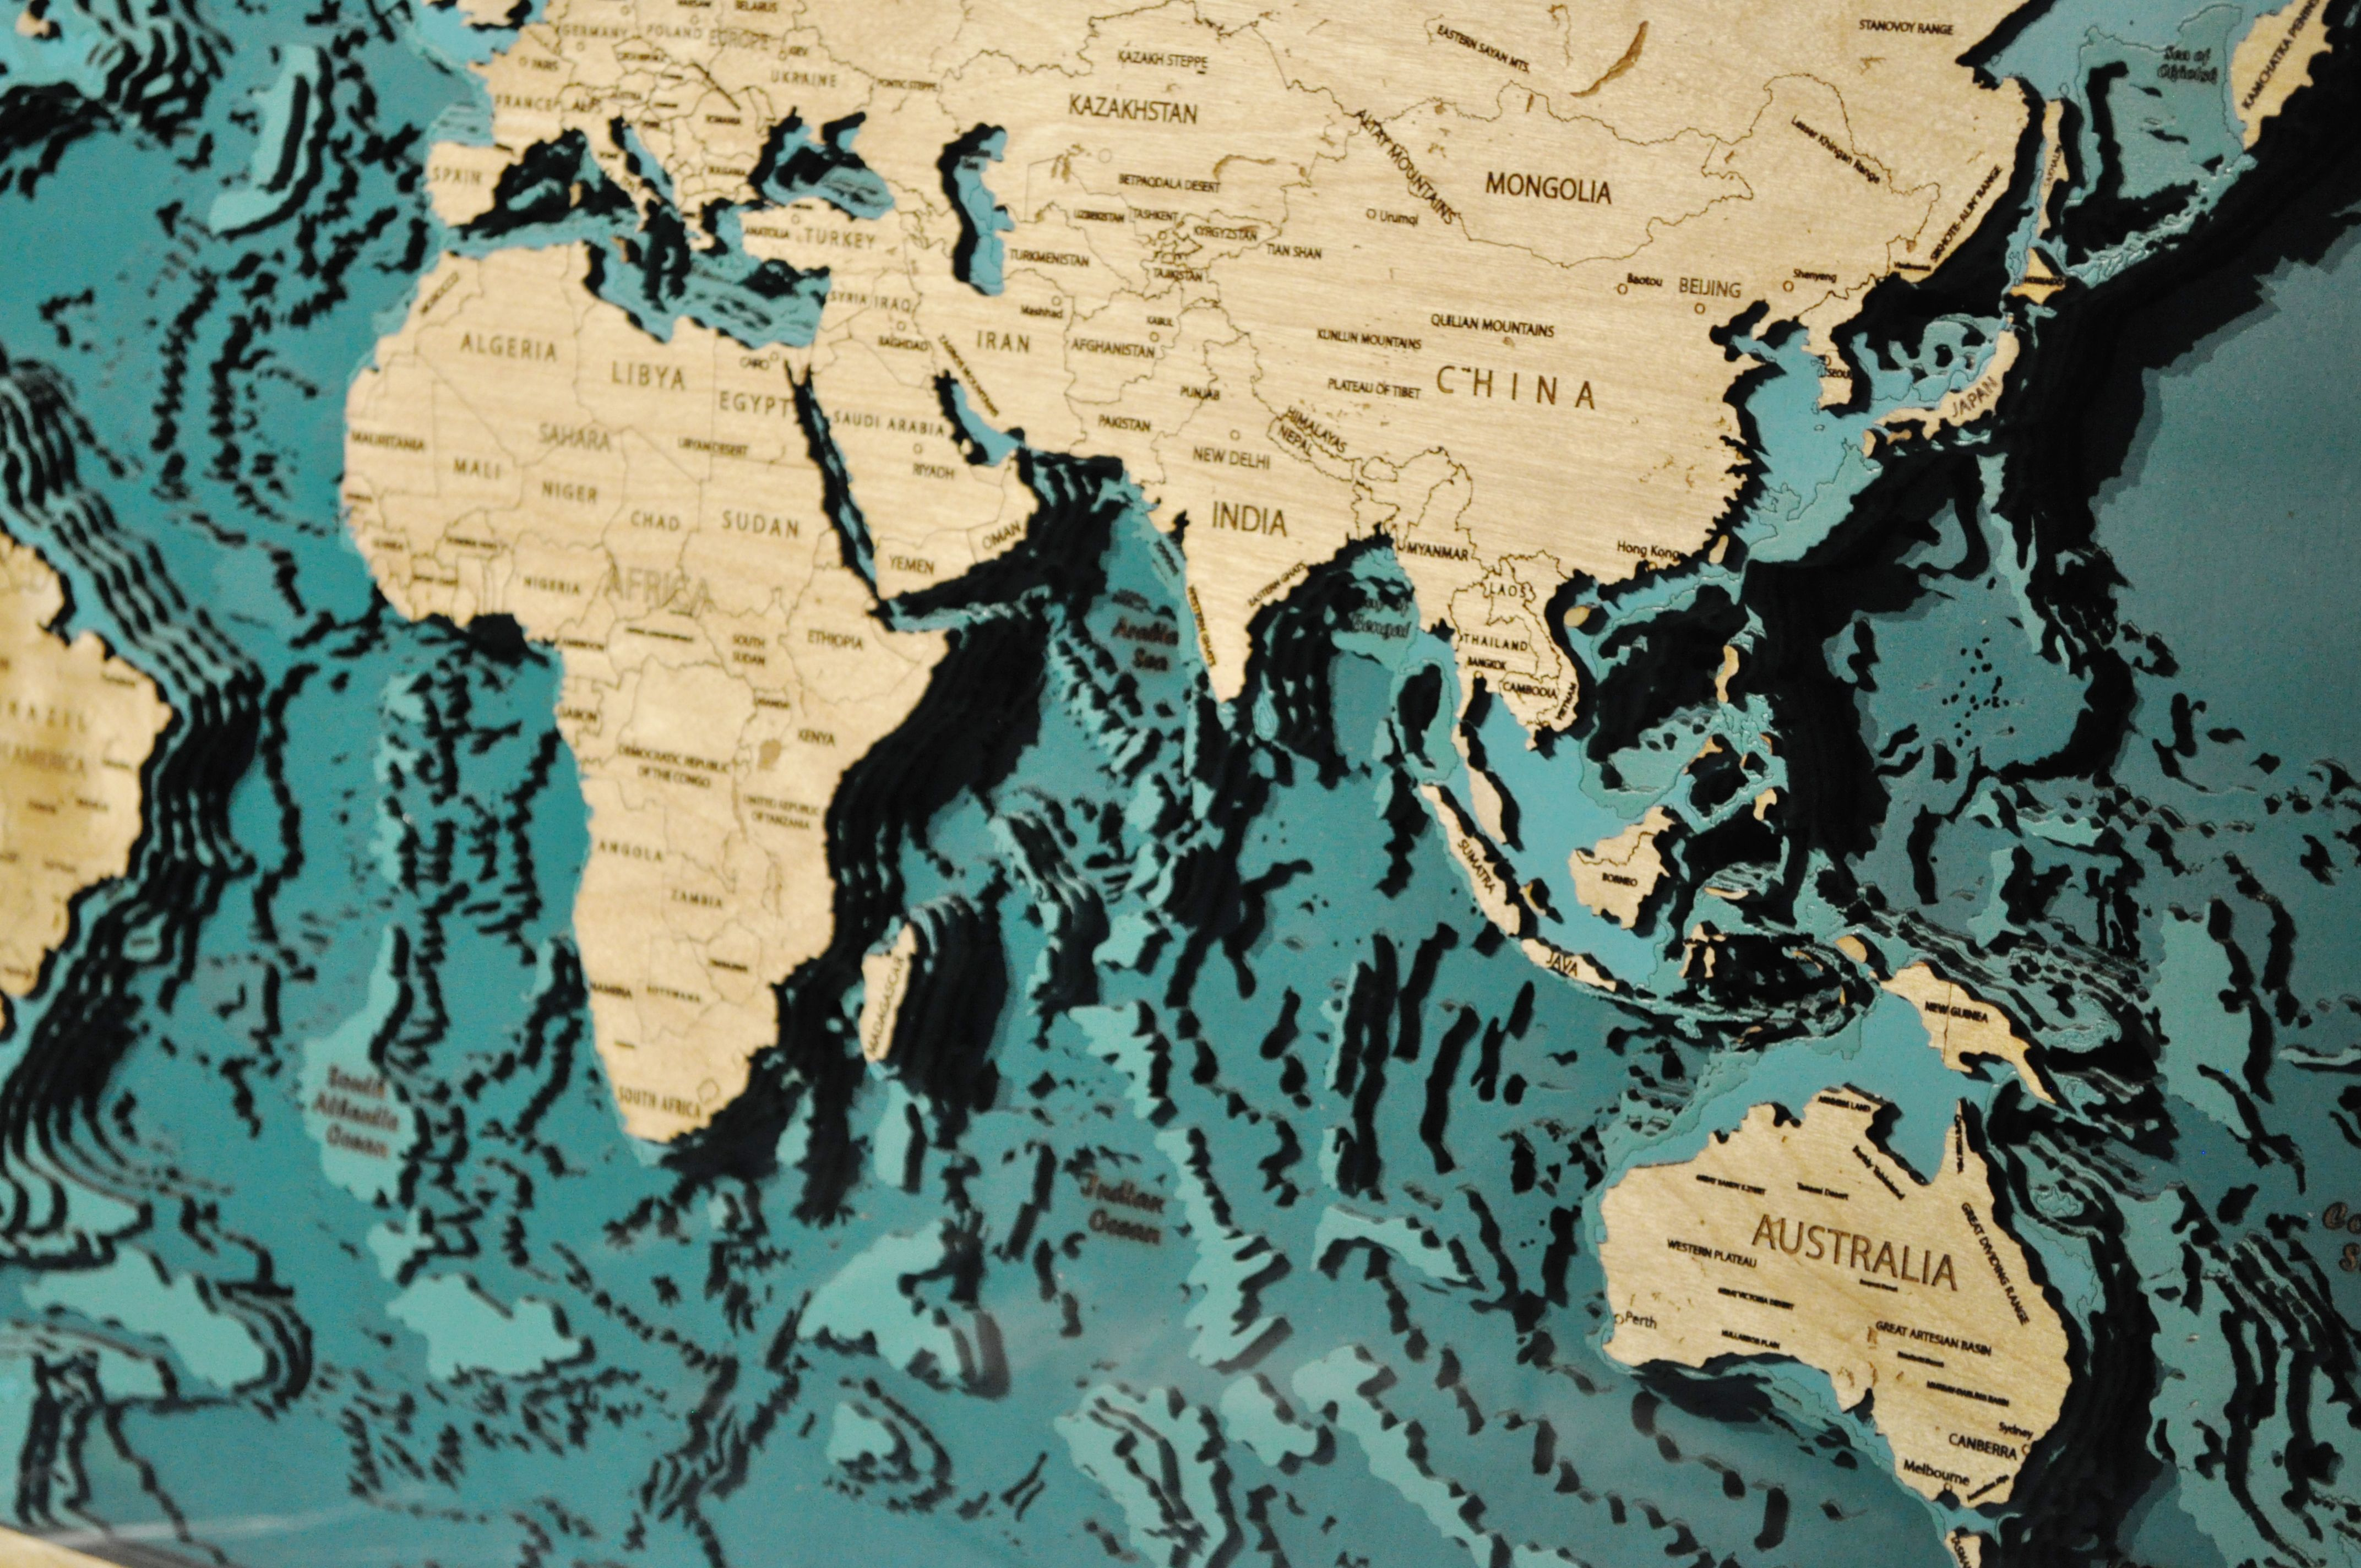 World map wooden world map plywood map 3d wood map of china world map wooden world map plywood map 3d wood map of china gumiabroncs Images